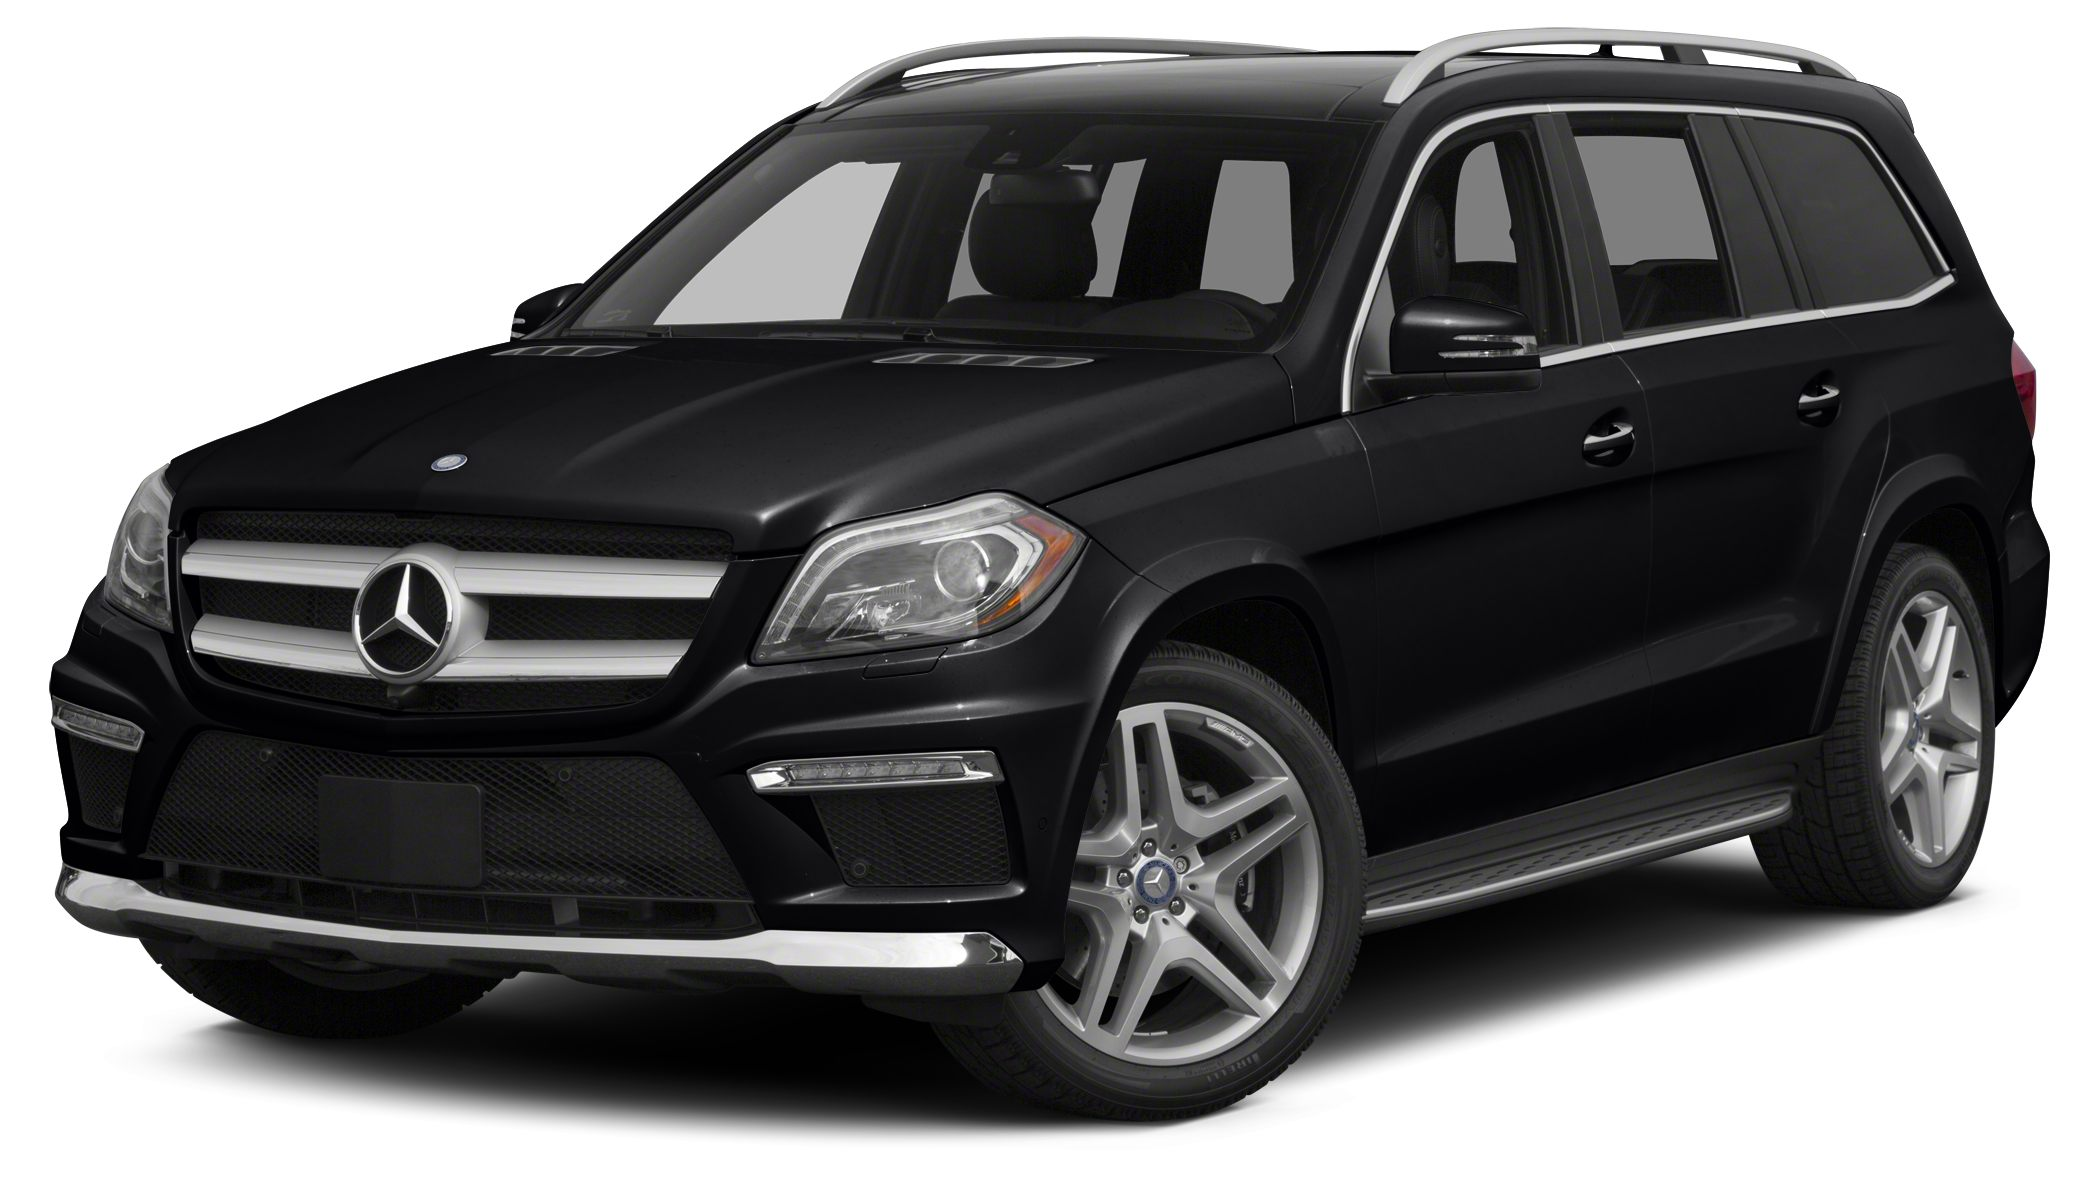 2013 MERCEDES GL-Class GL550 4MATIC We sold this one owner GL550 new Only 24k miles and we have C